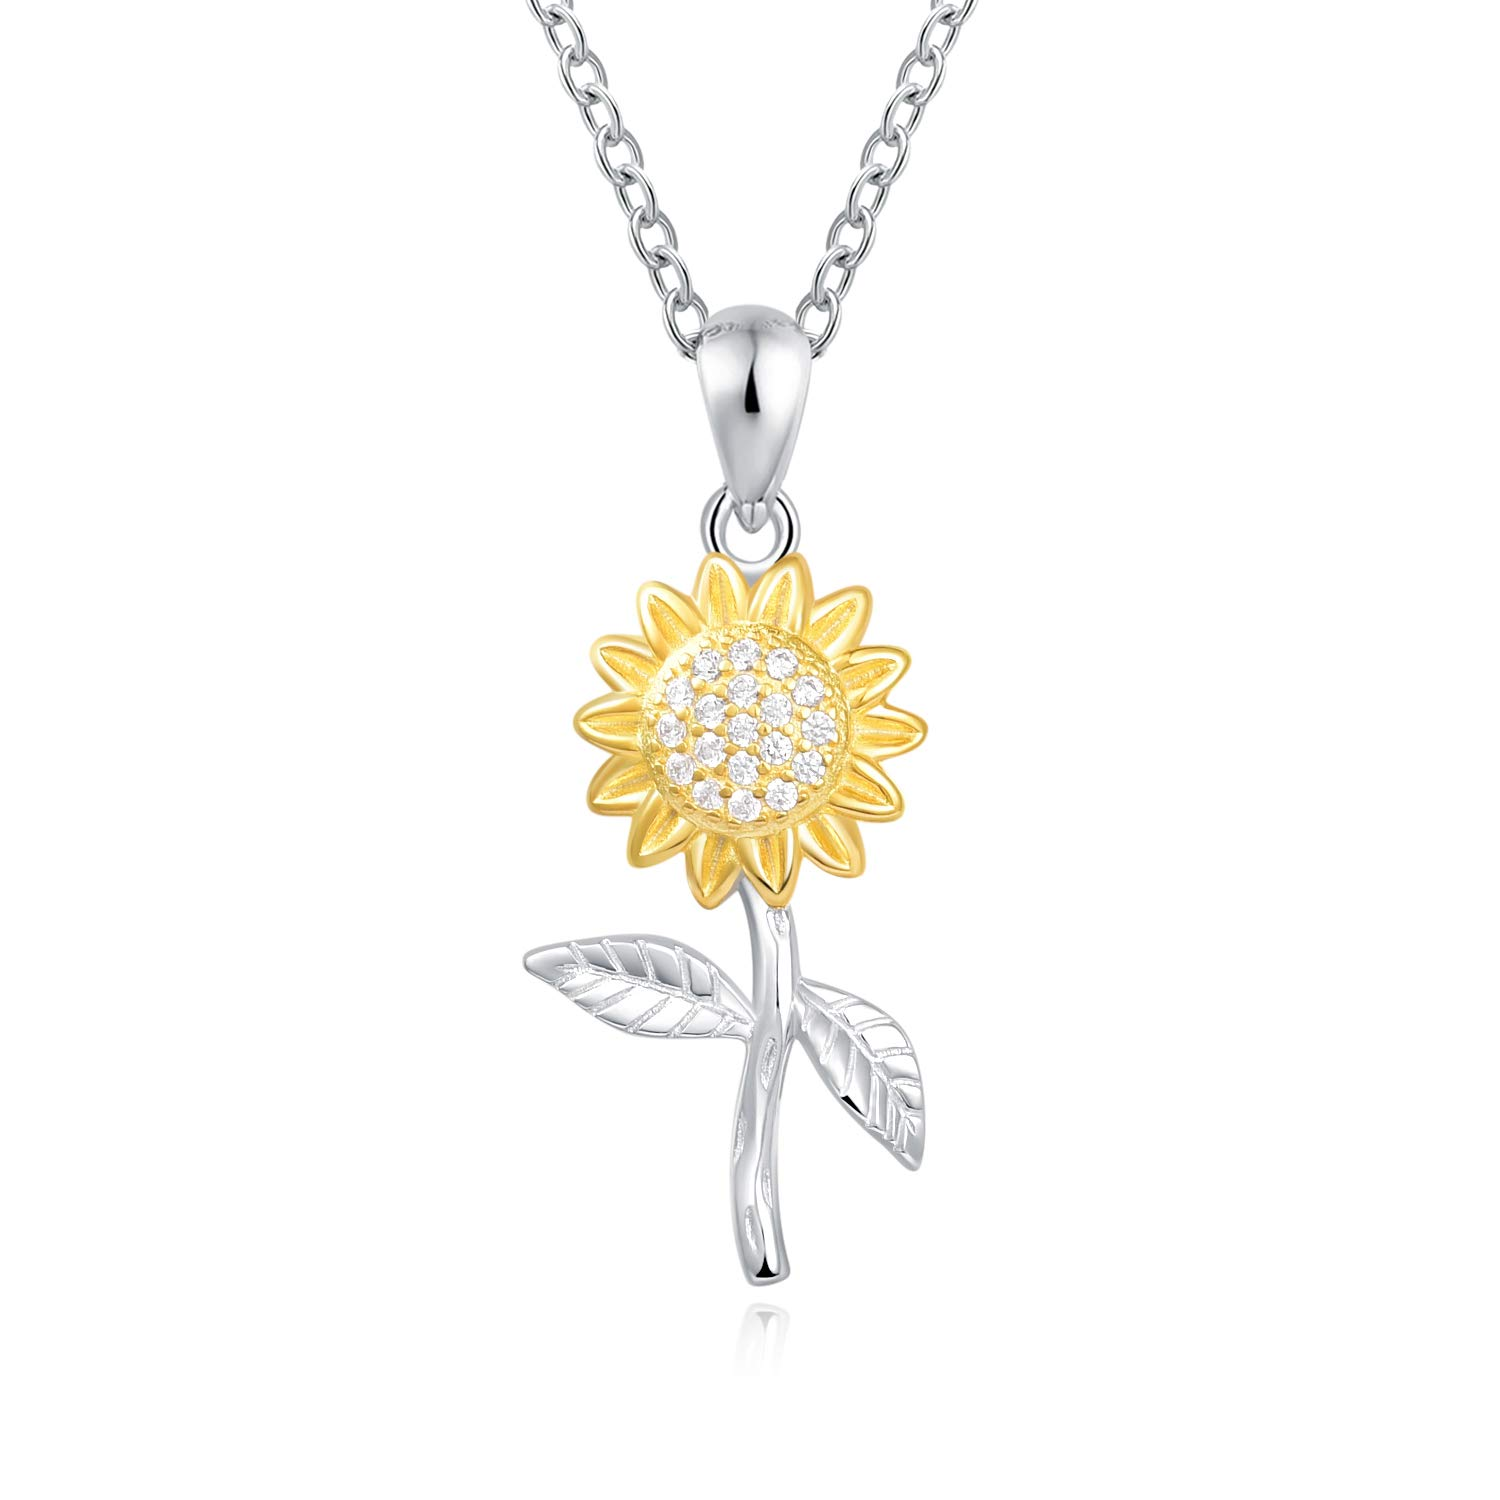 Sunflower Necklace Sterling Silver You are My Sunshine Gold Plated with Cubic Zirconia Jewelry for Mom